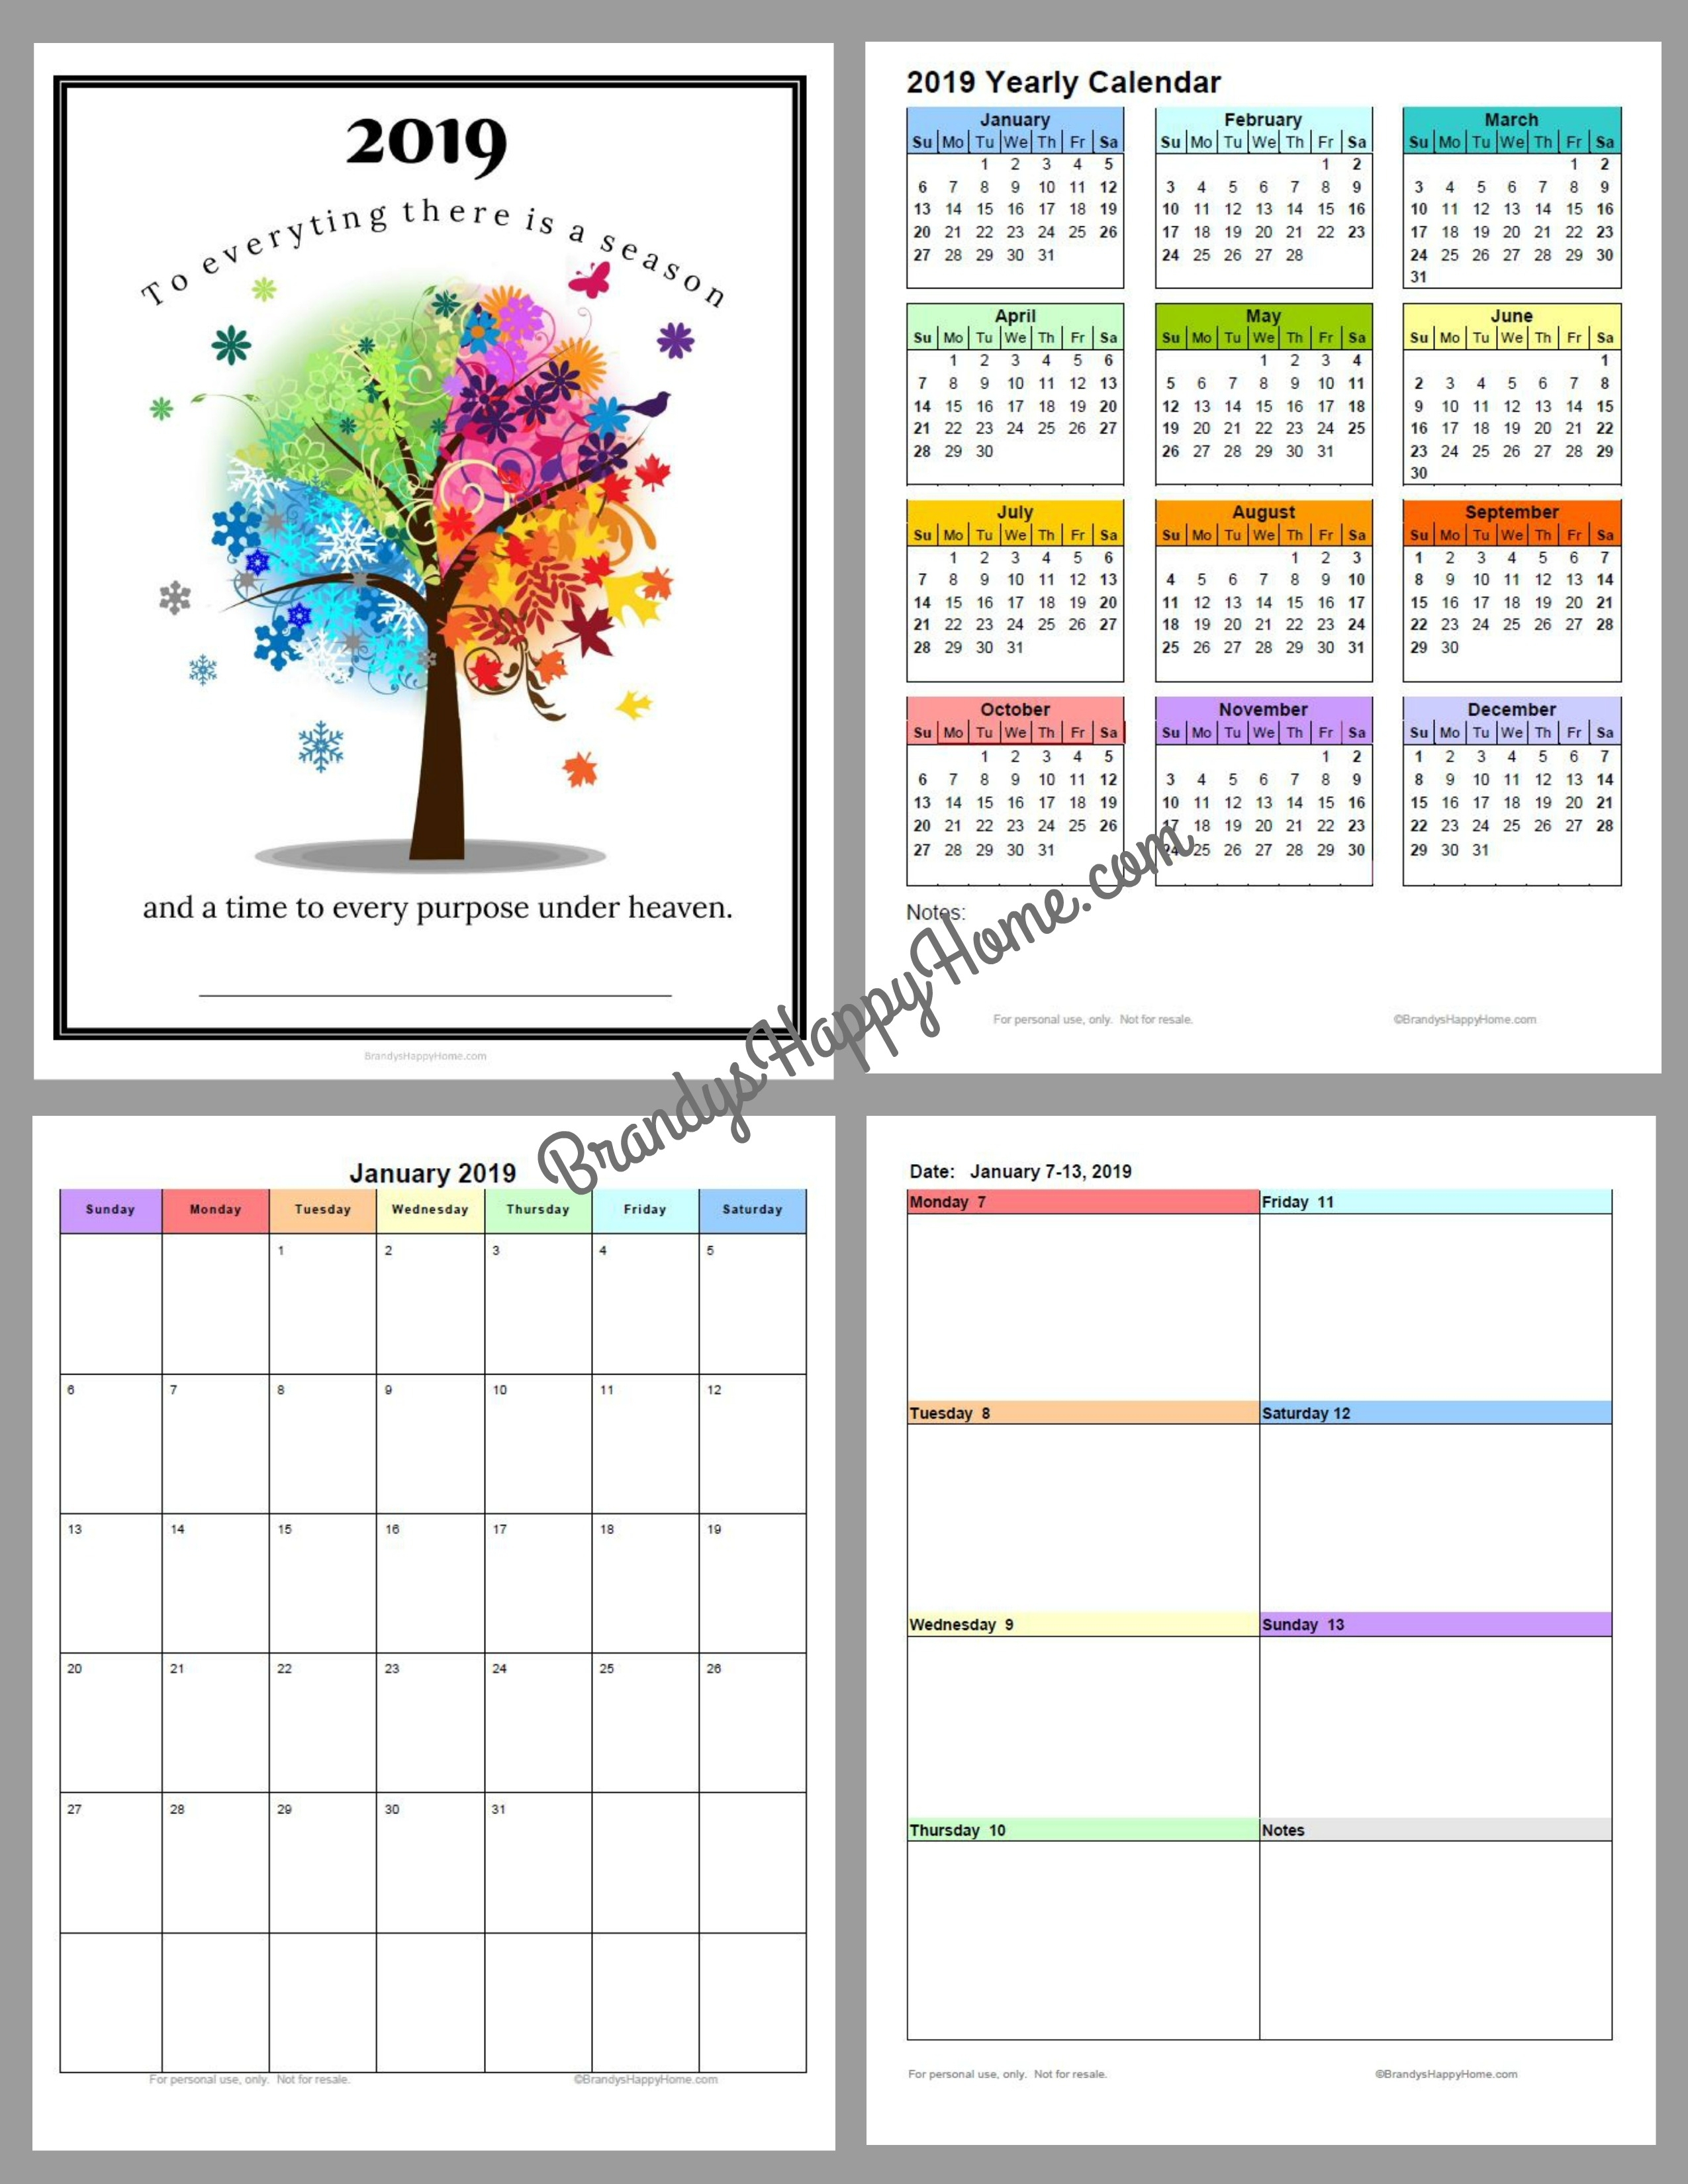 Monthly Planner Template For Children | Calendar Printing Example pertaining to Monthly Planner Template For Children